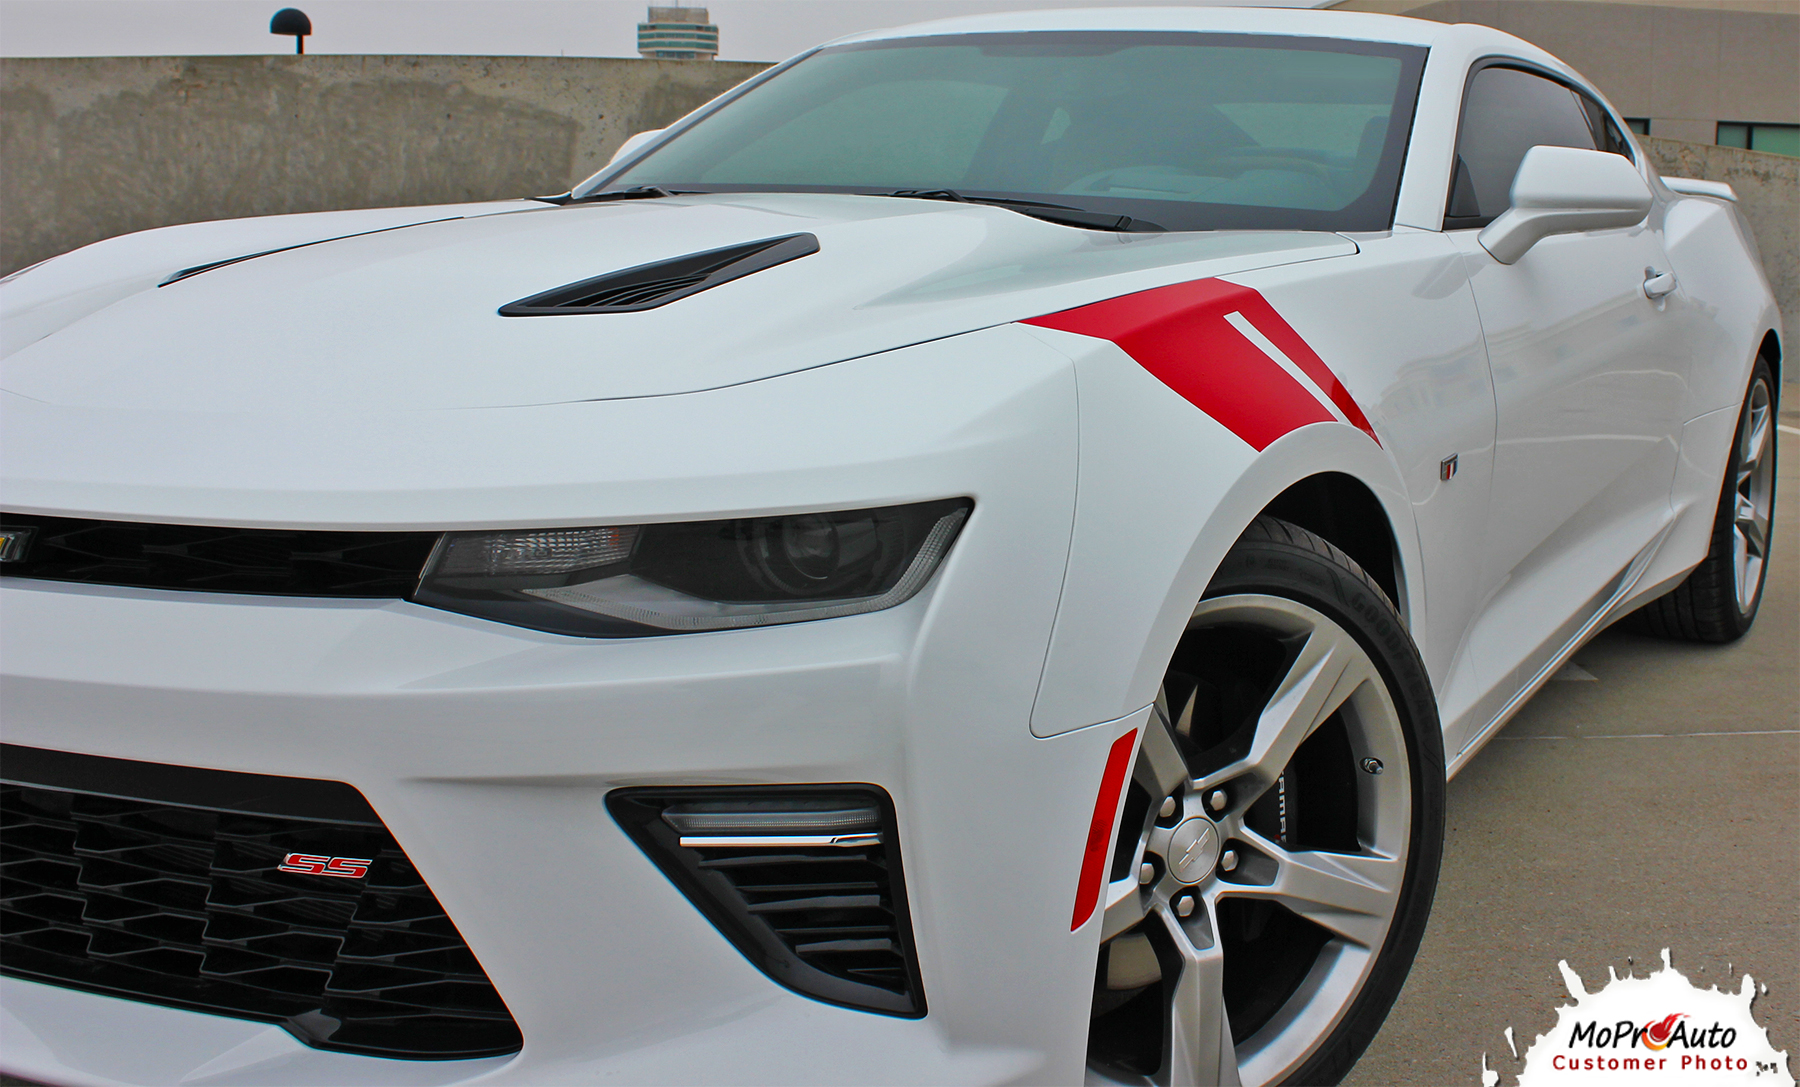 2016 2017 2018 Chevy SS RS Camaro HASHMARK Vinyl Graphics Kits, Decals, Stripes